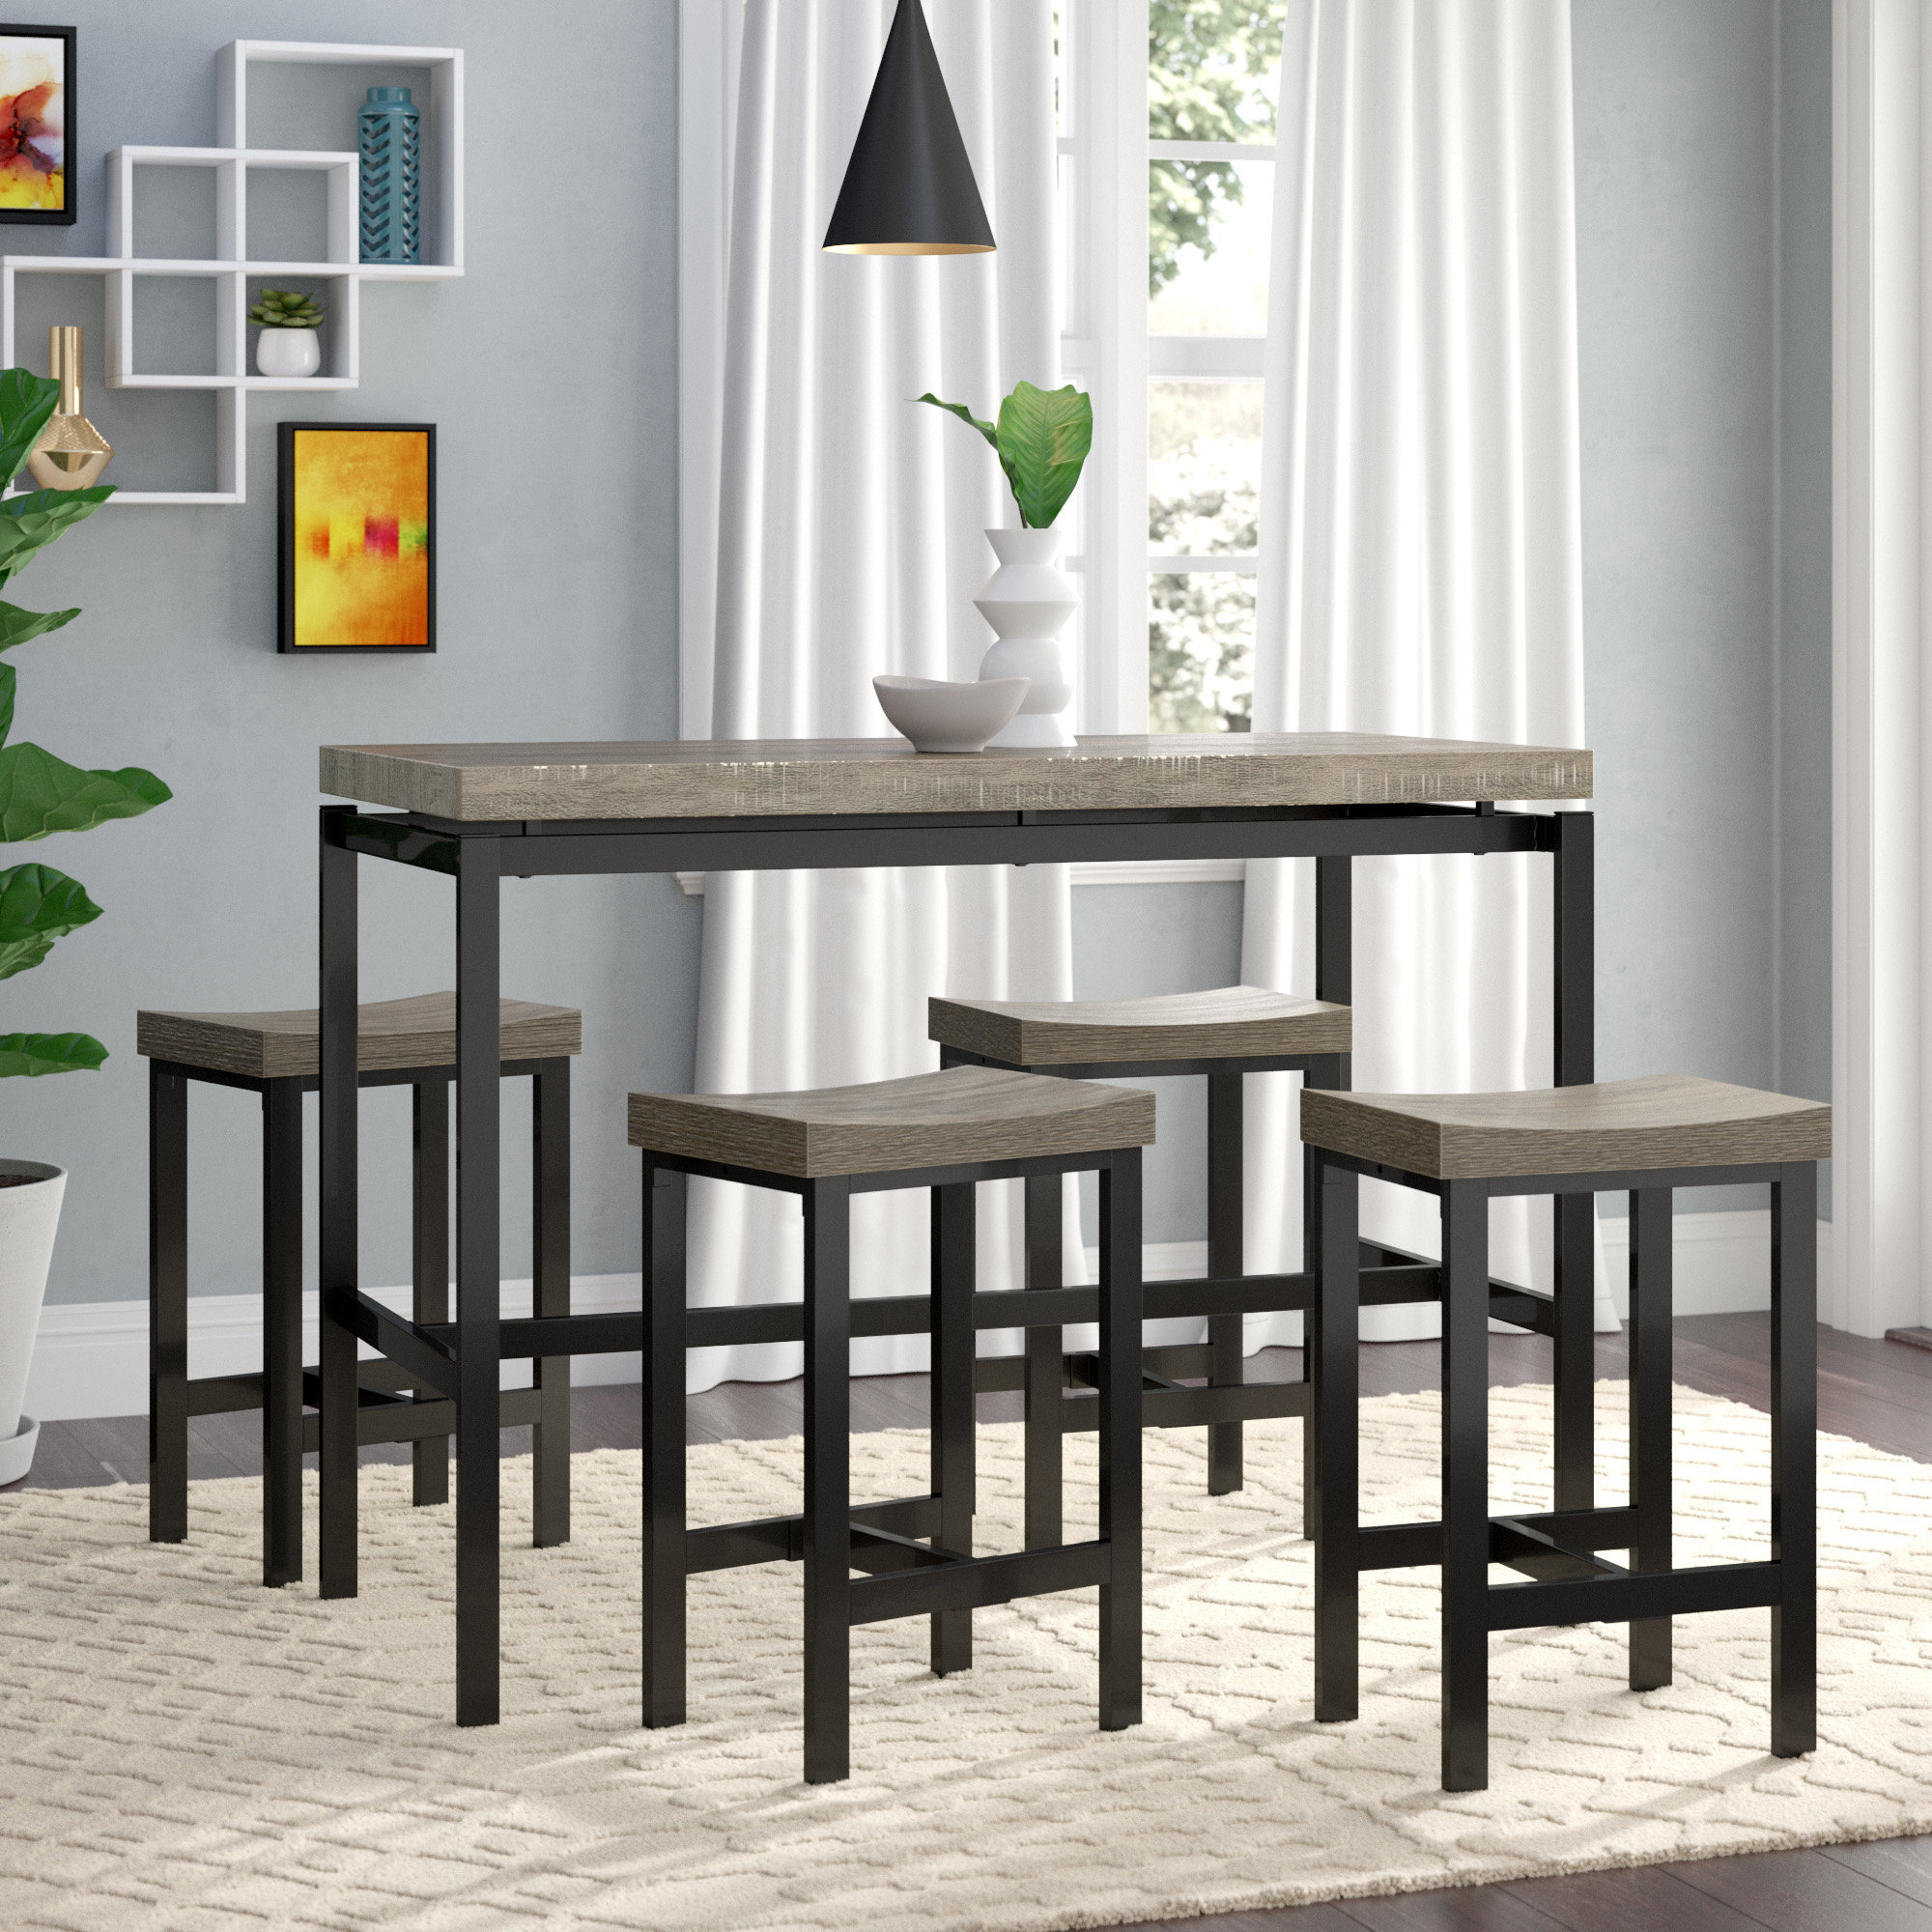 Bryson 5 Piece Dining Sets In Recent Beveridge 5 Piece Dining Set (Gallery 20 of 20)